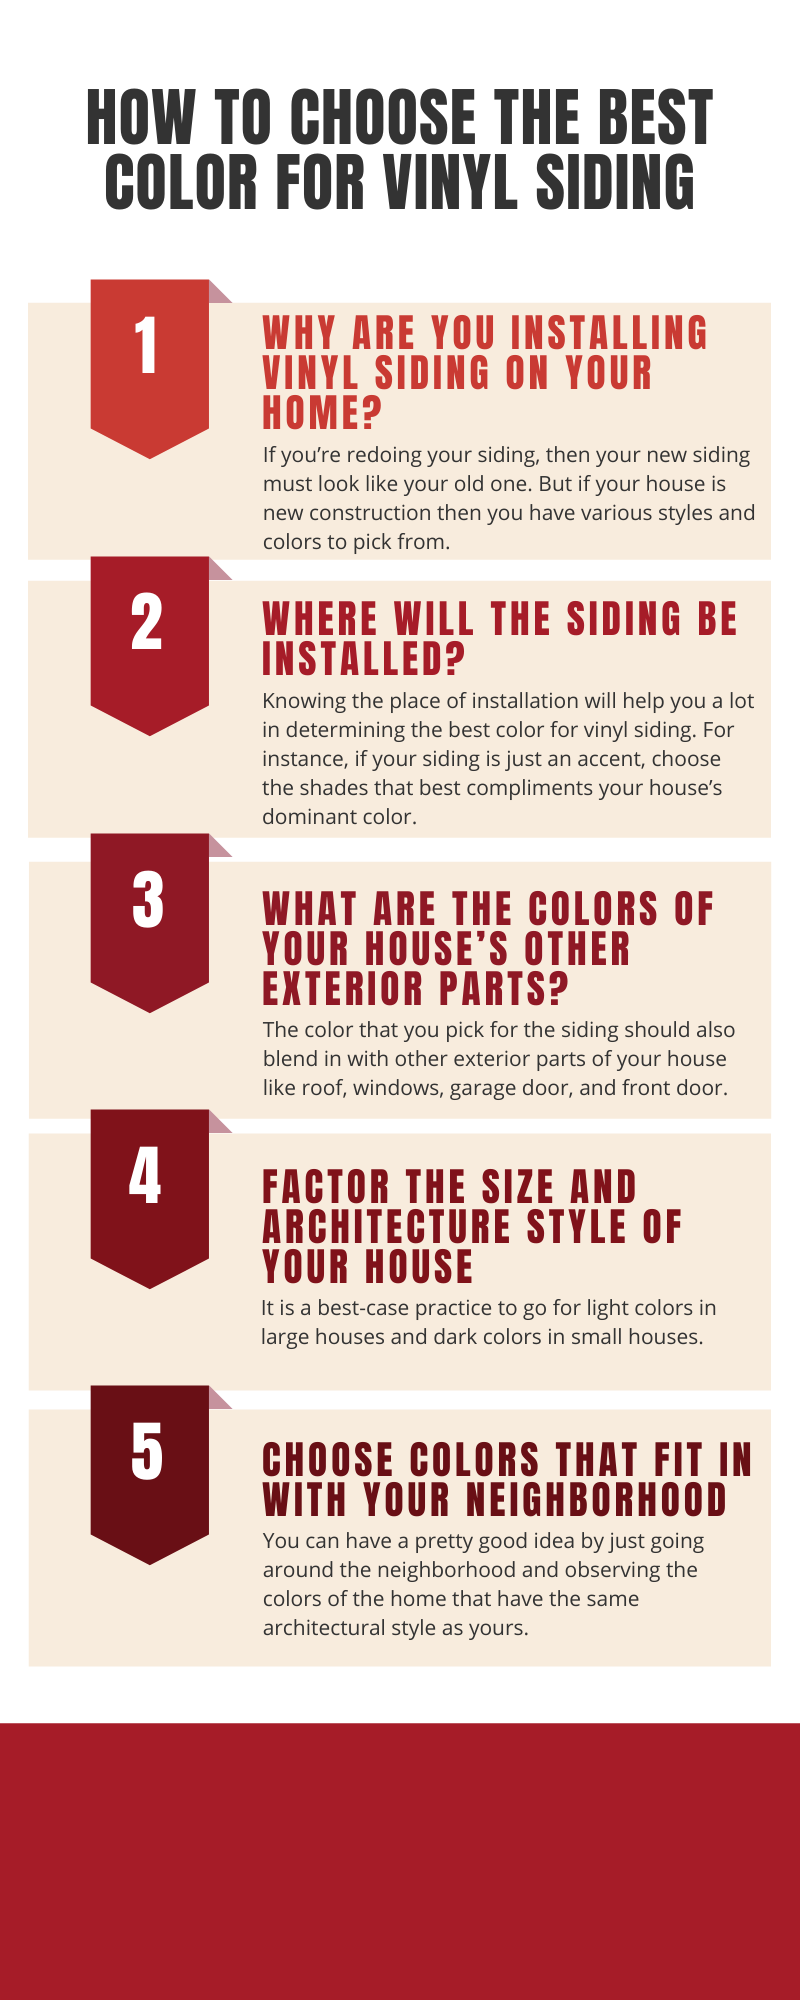 How to choose the best color for Vinyl Siding - Infographic